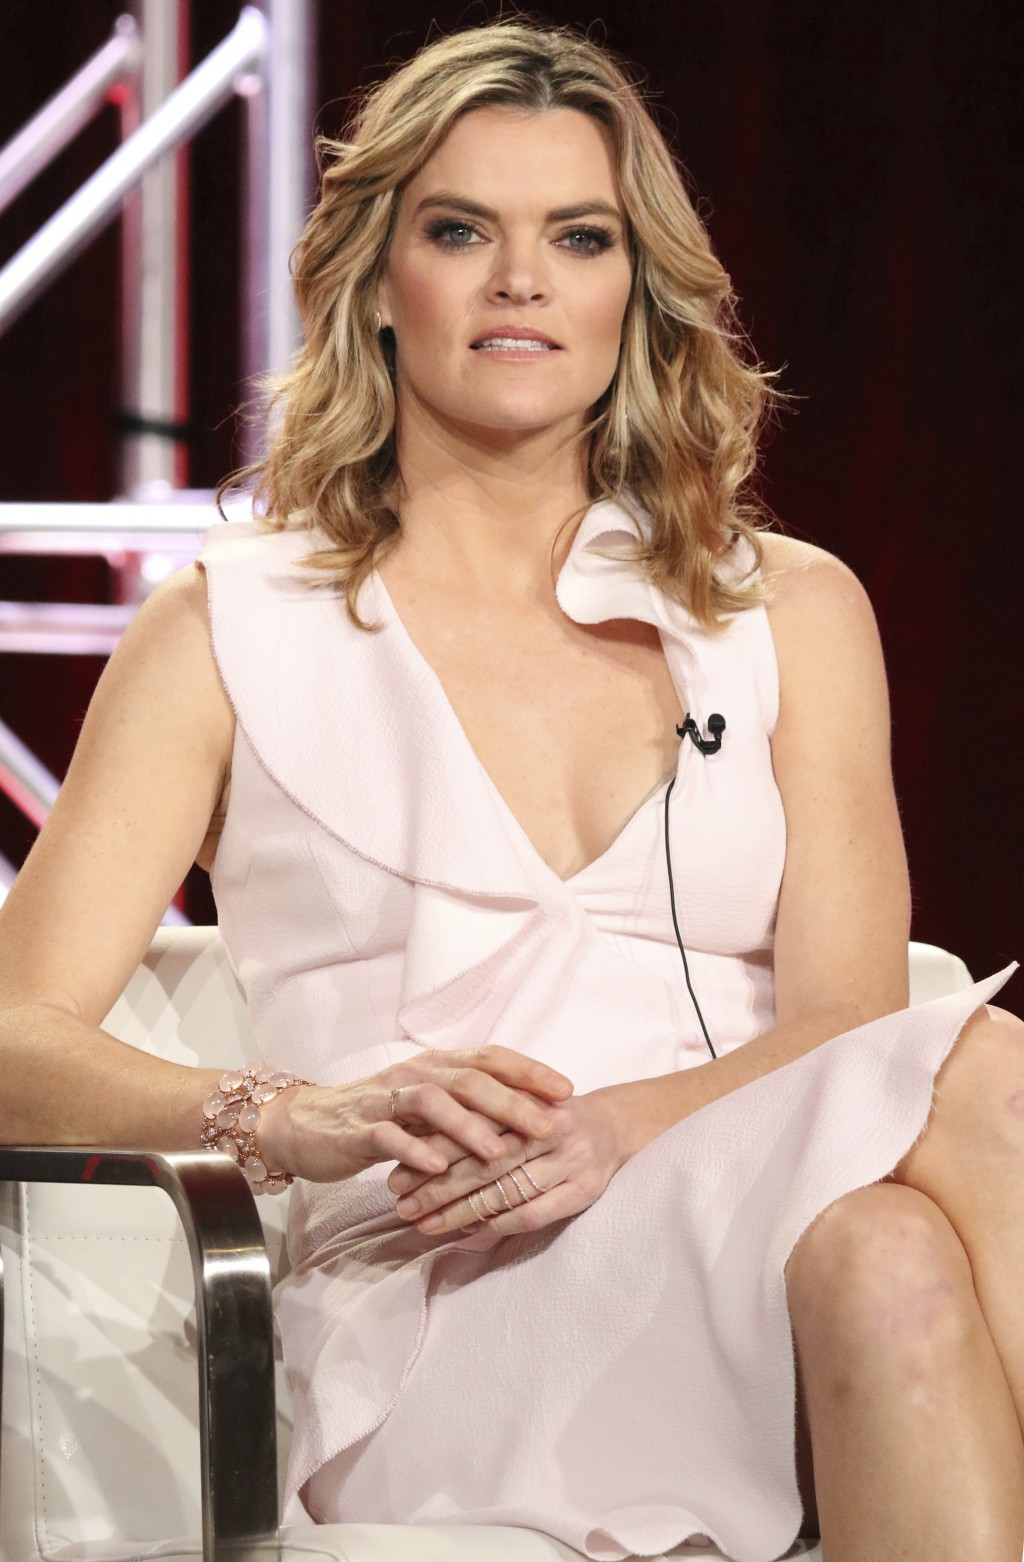 Missy Pyle participates in the 'Impulse' panel during the YouTube Television Critics Association Winter Press Tour on Saturday, Jan. 13, 2018, in Pasa